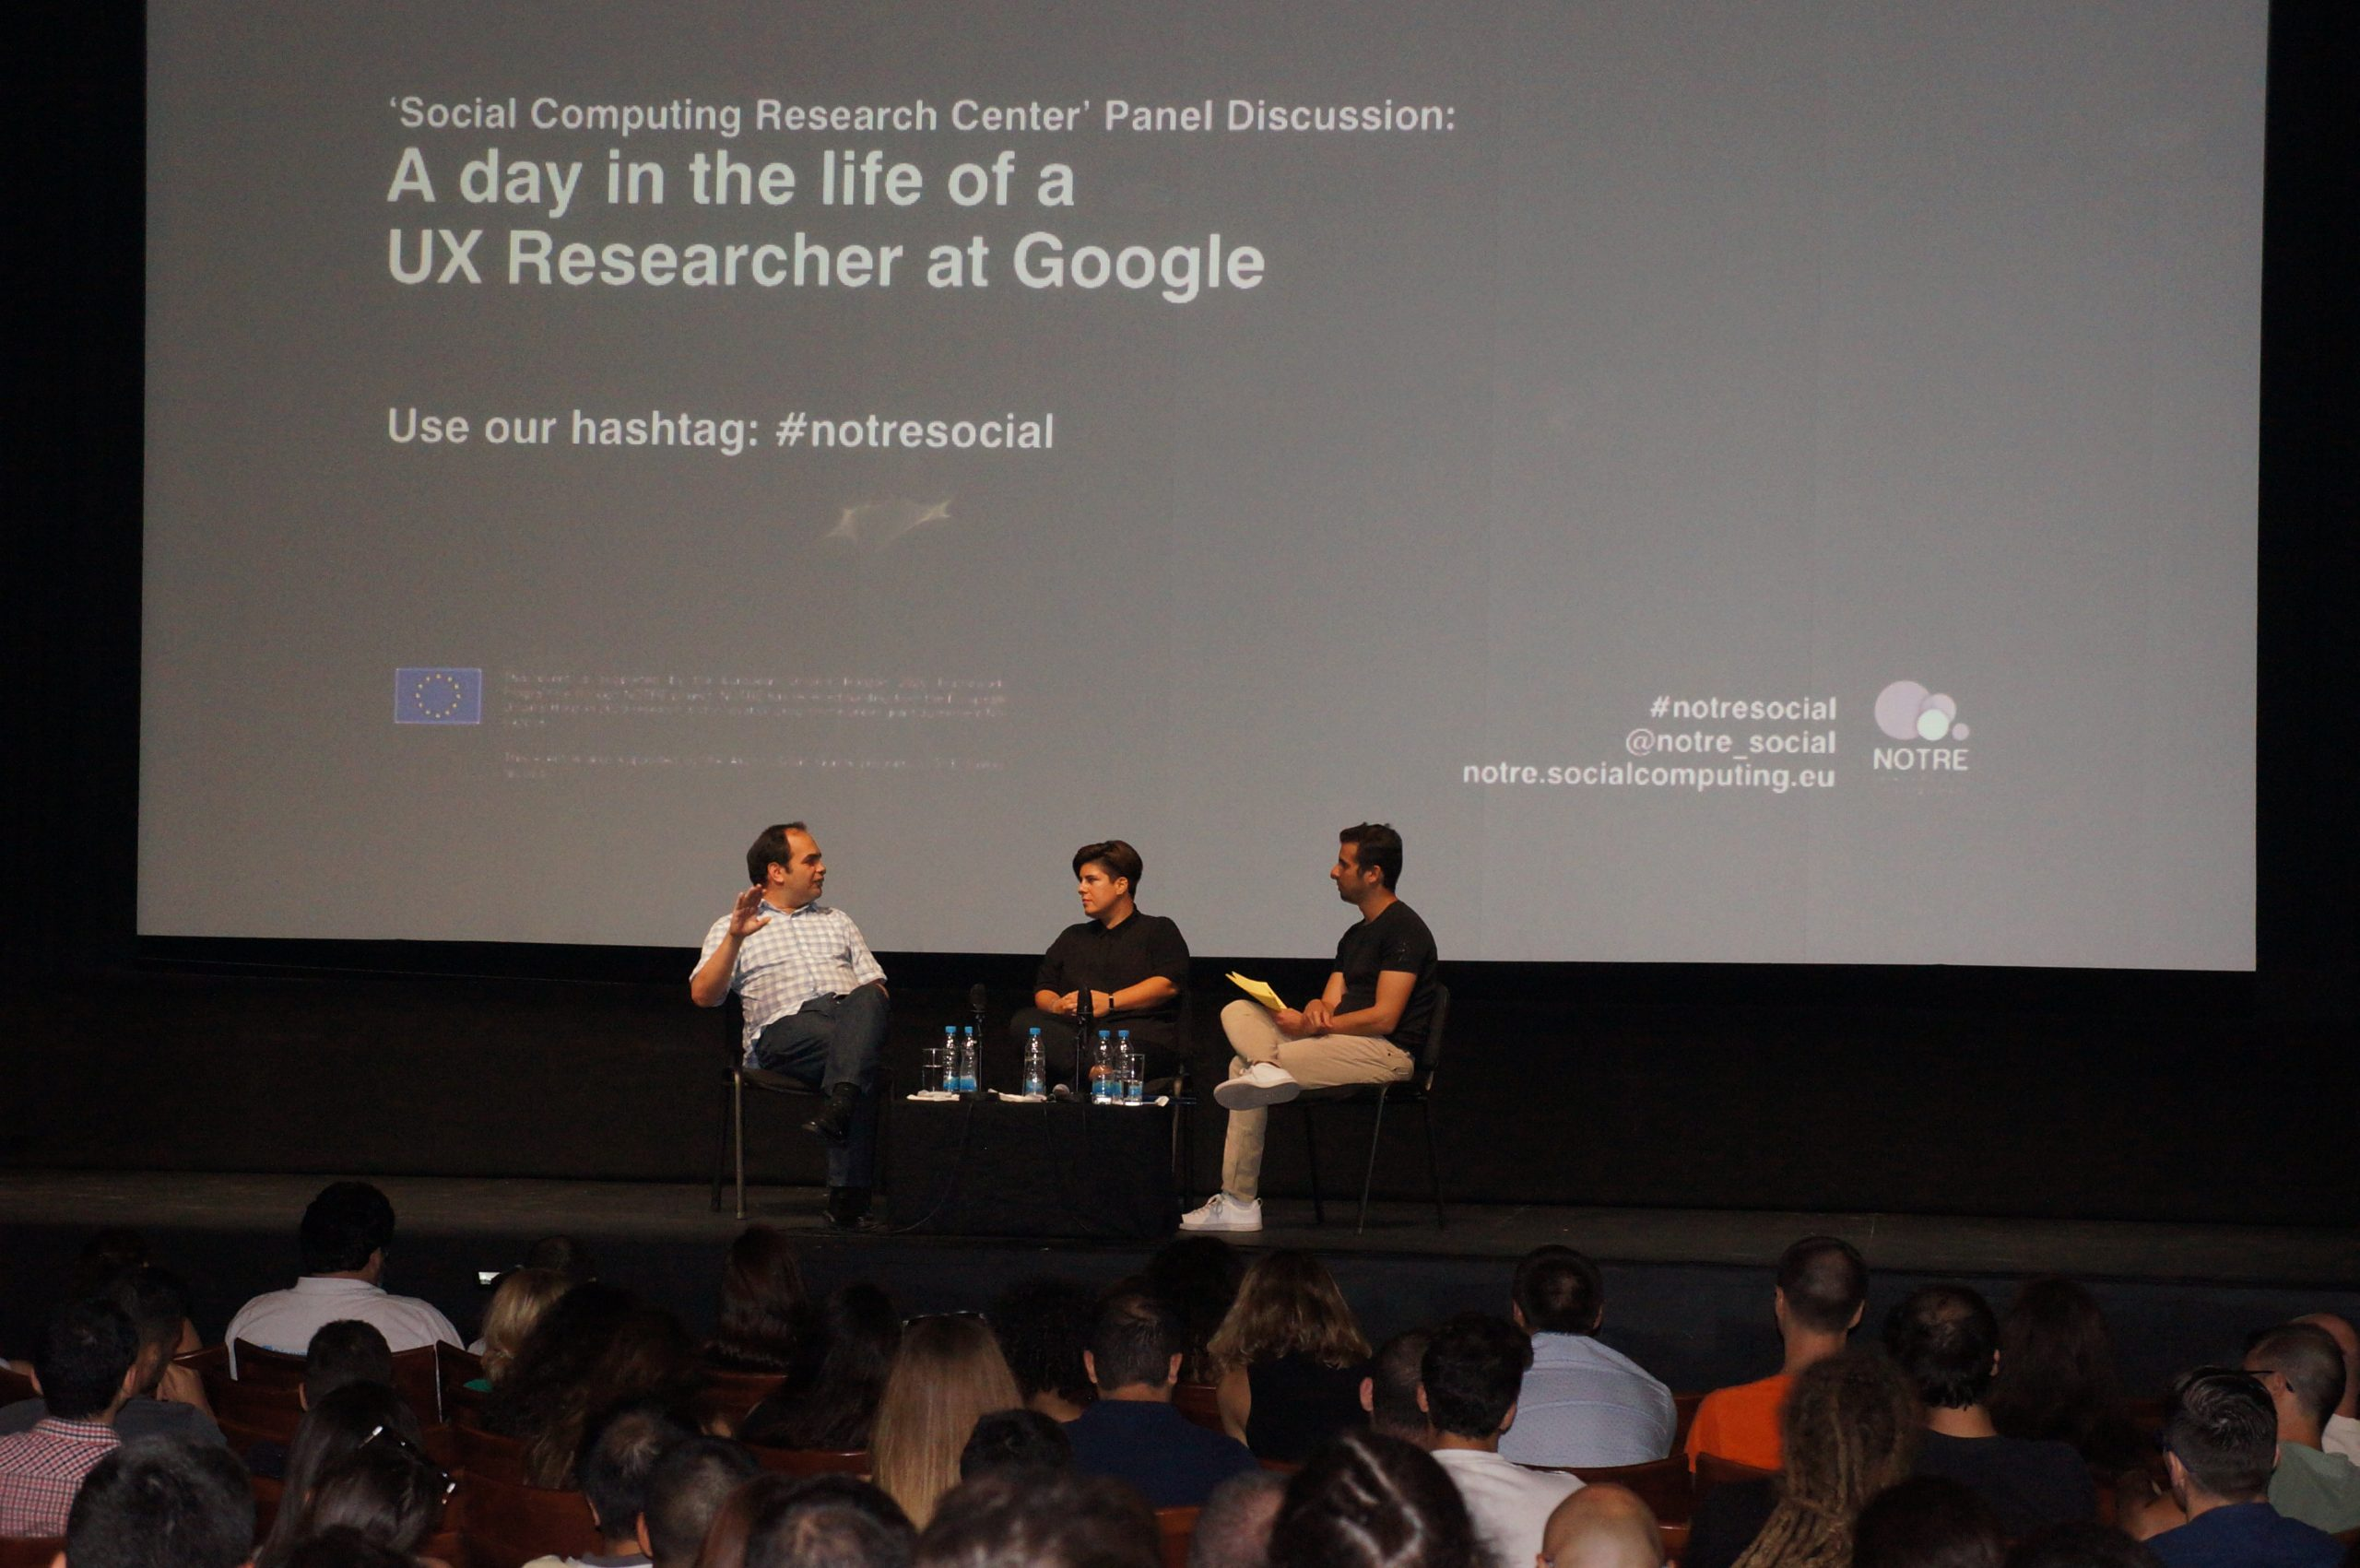 A day in the life of a UX Researcher at Google